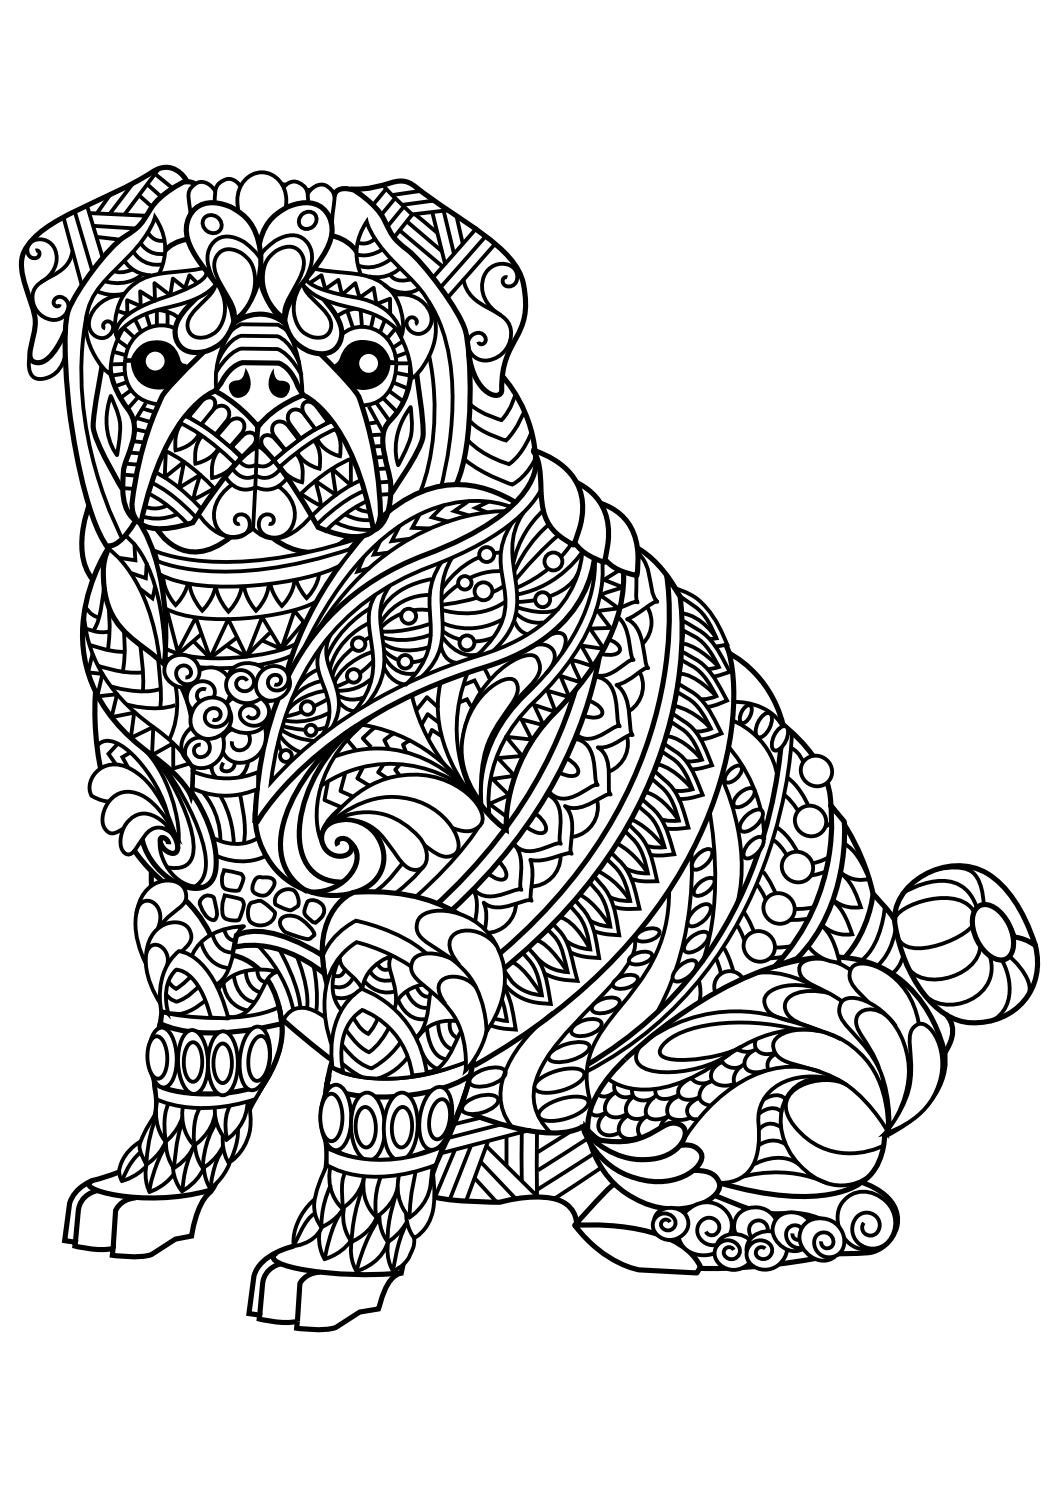 1059x1497 Unique Hurricane Coloring Pages